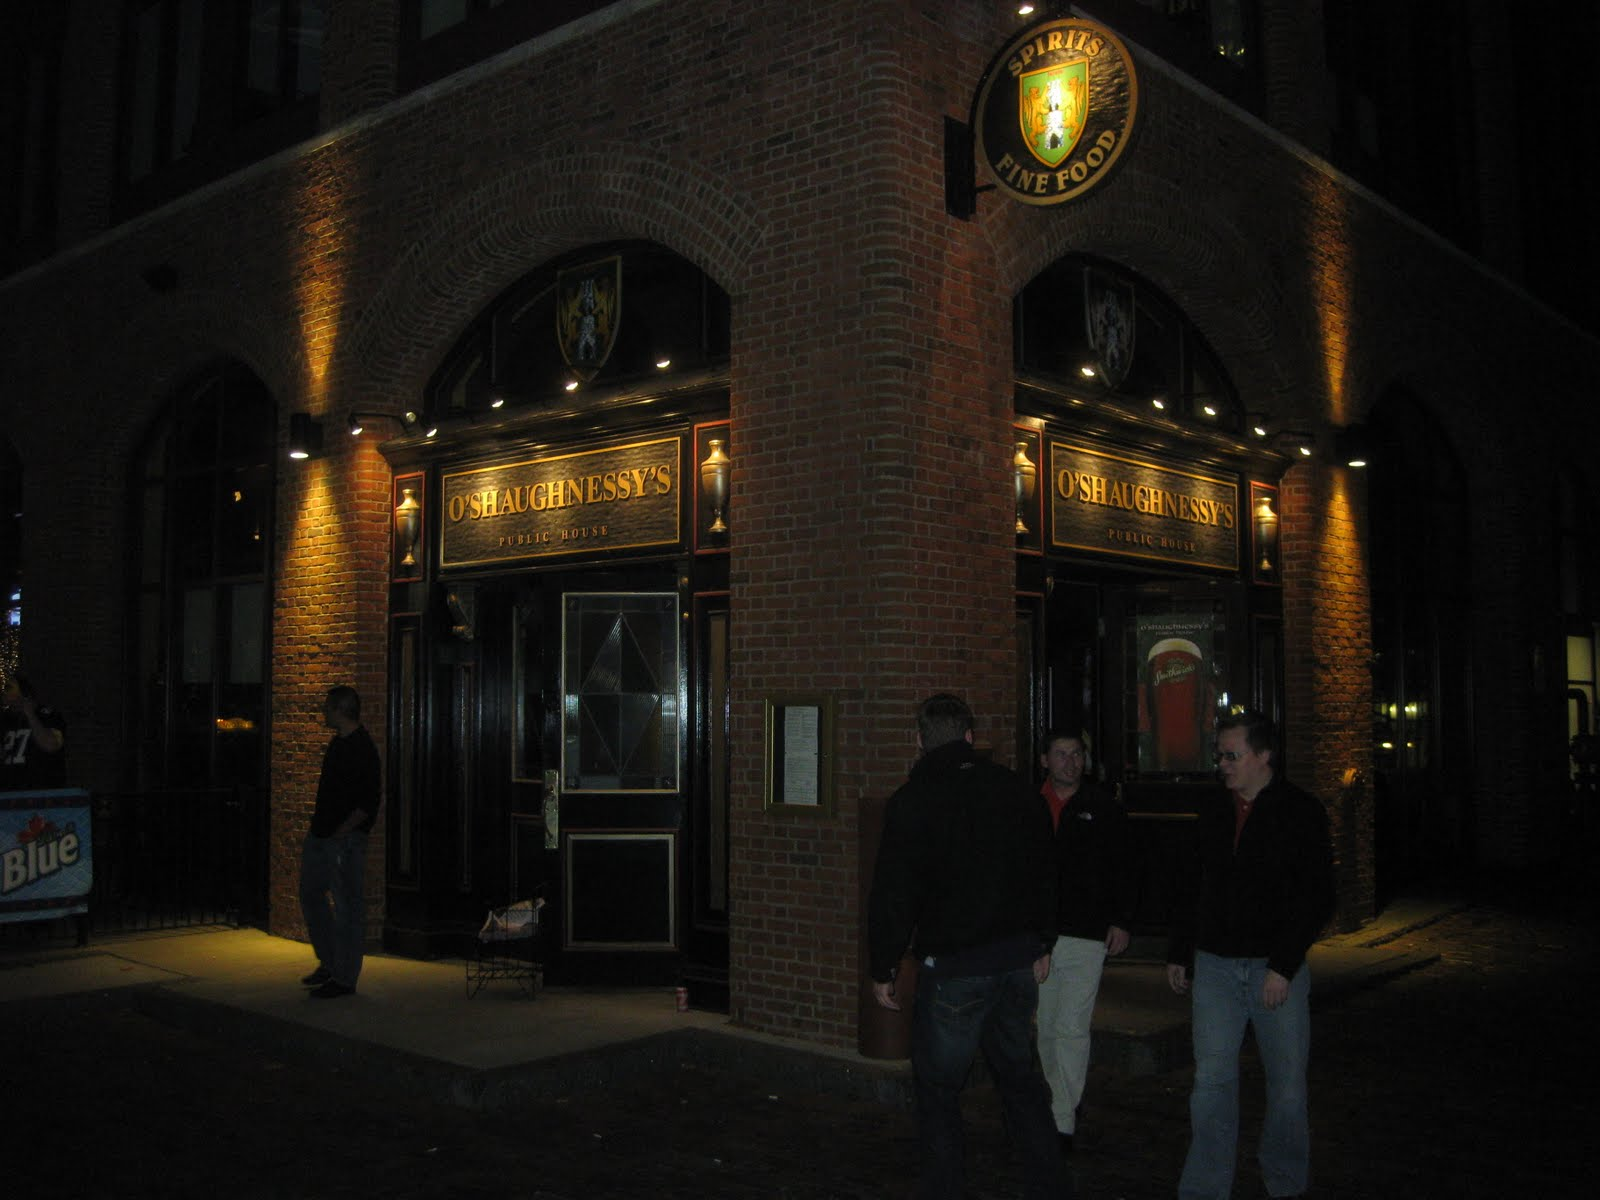 Engy's: Night Out on the Town